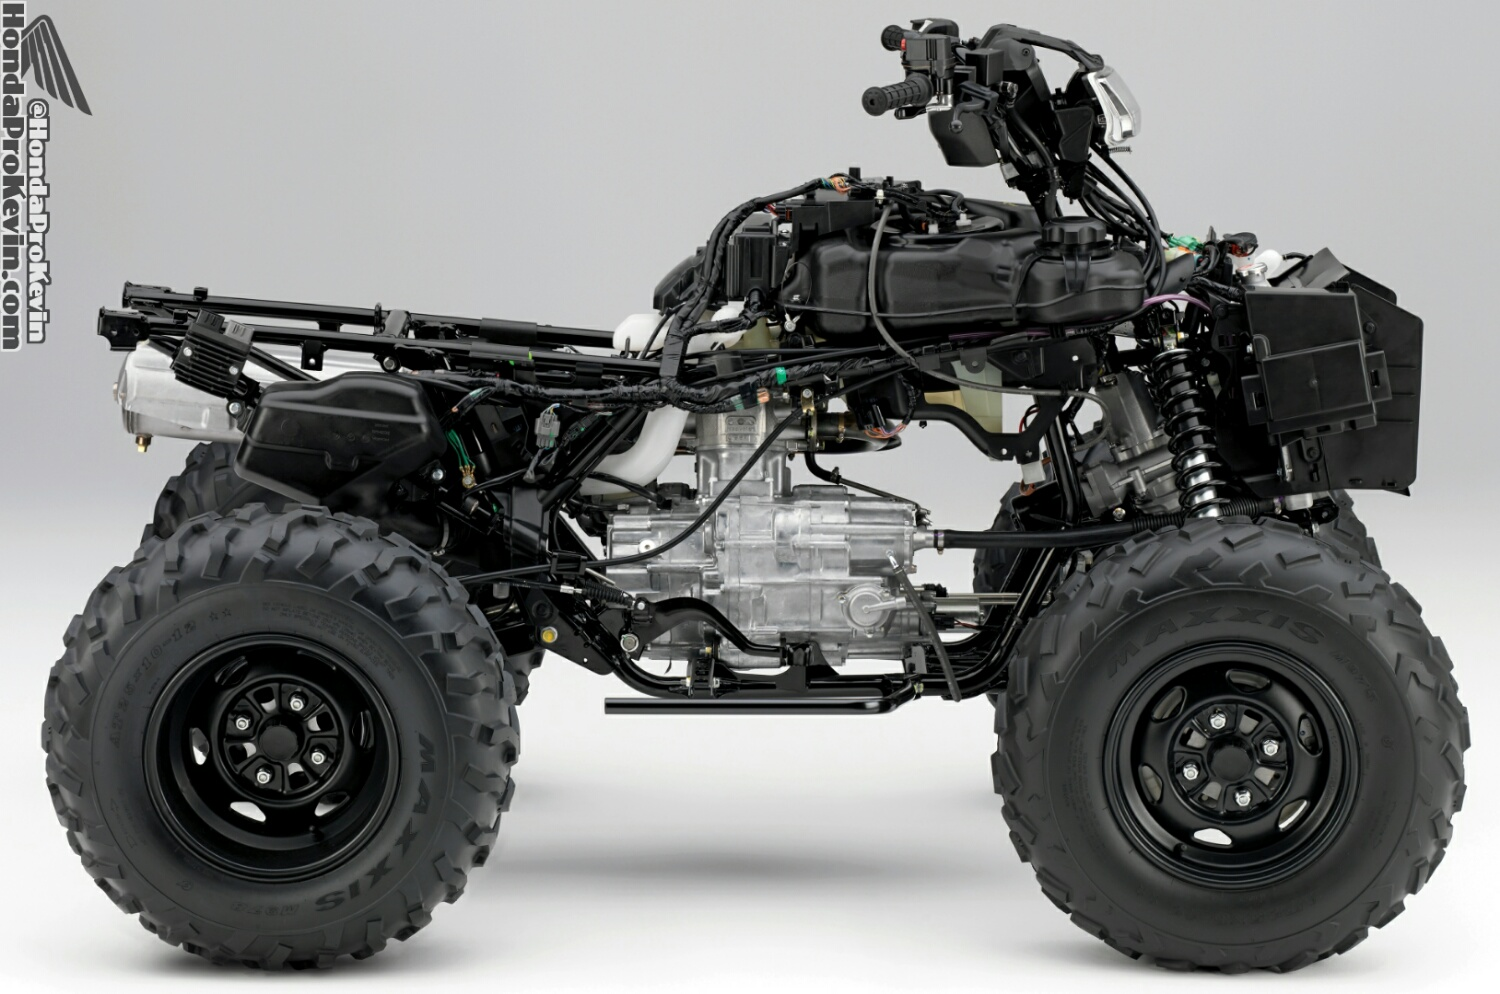 hight resolution of 2016 honda foreman 500 atv frame engine review specs price hp